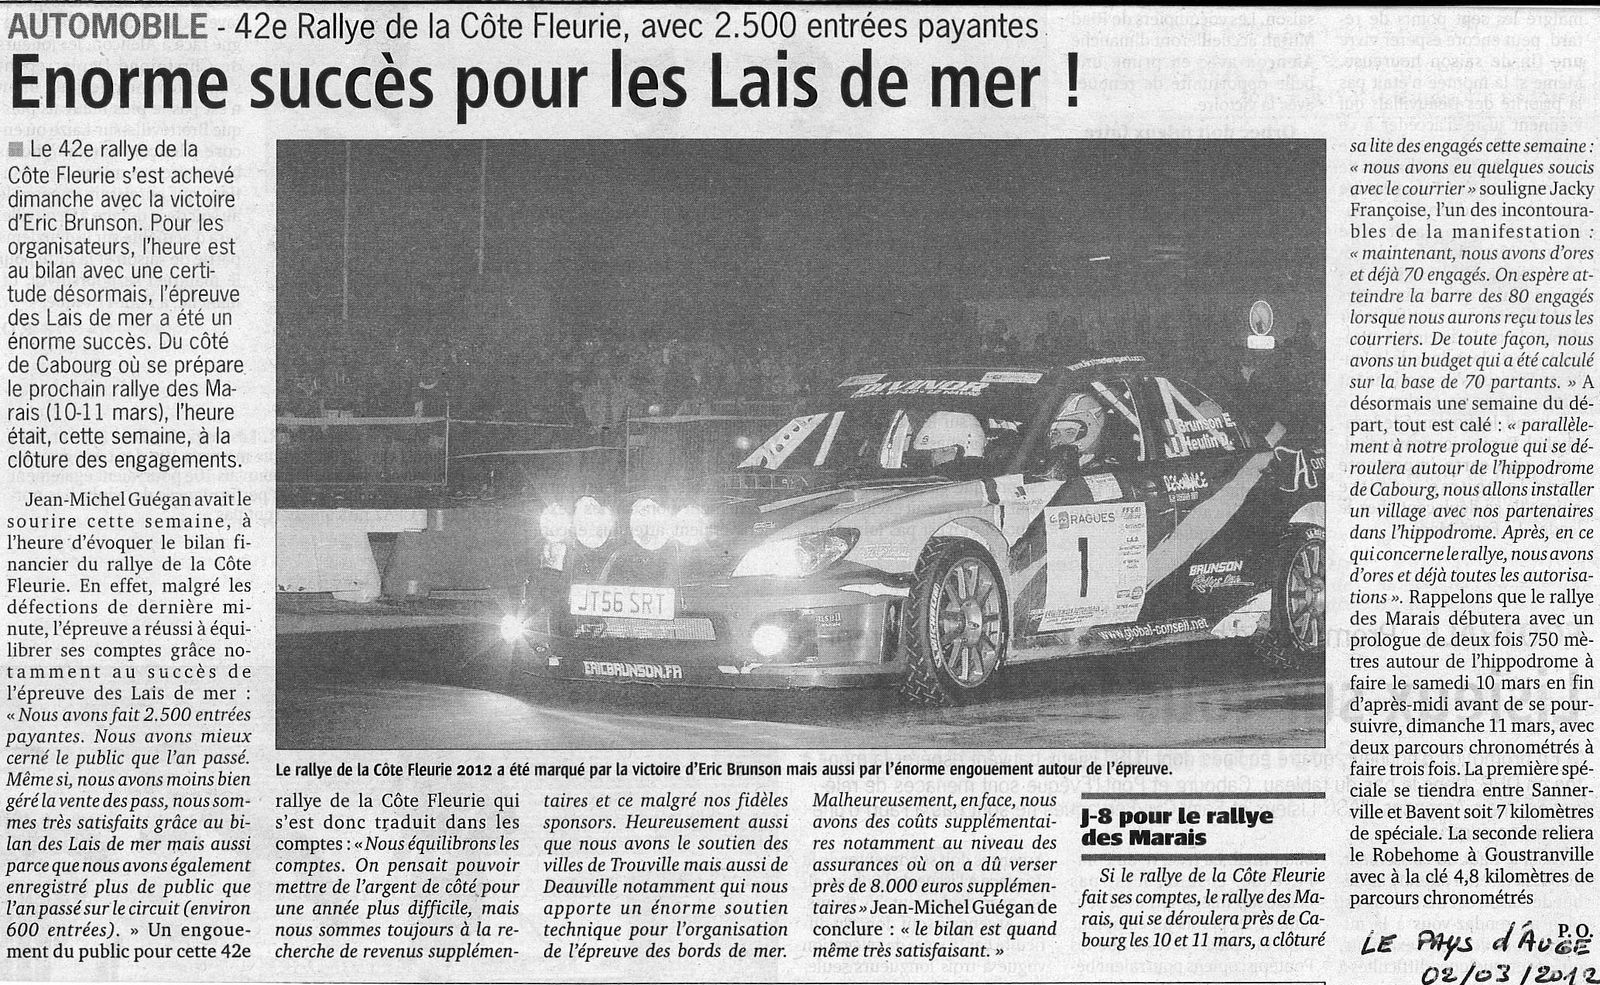 Coupure de presse journal le pays d 39 auge 2 mars 2012 tac sport events - Le pays d auge journal ...